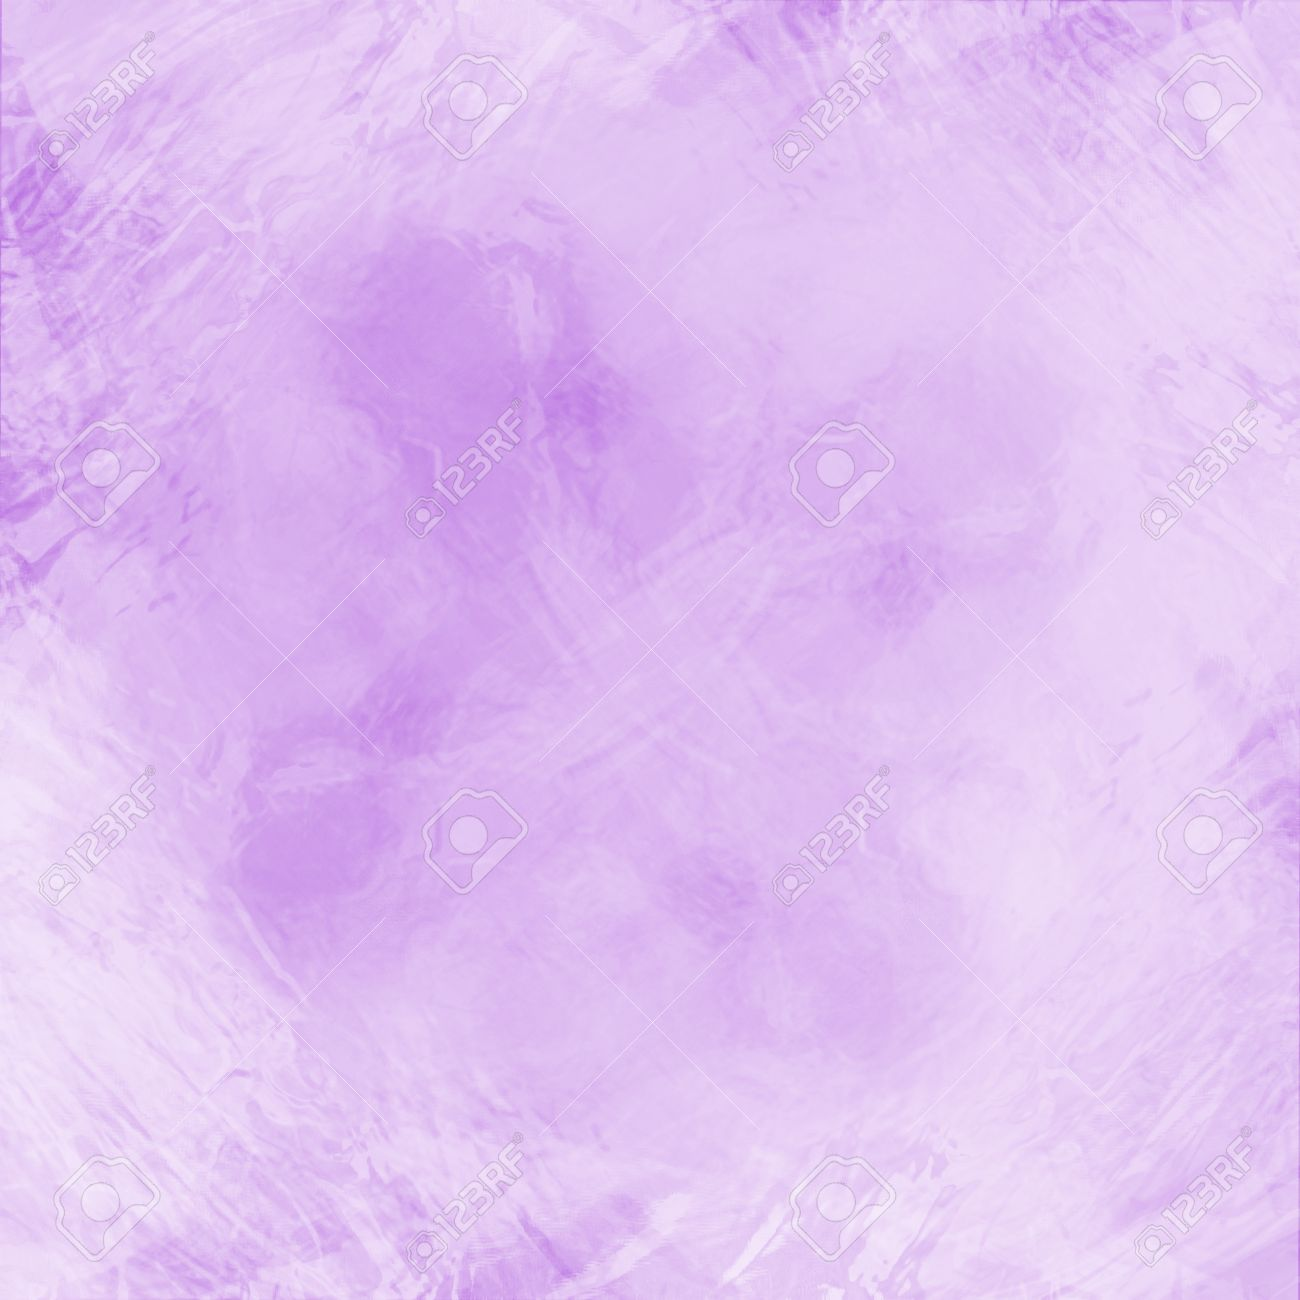 soft purple and white background with glassy texture Stock Photo - 39497174 e8c926bae